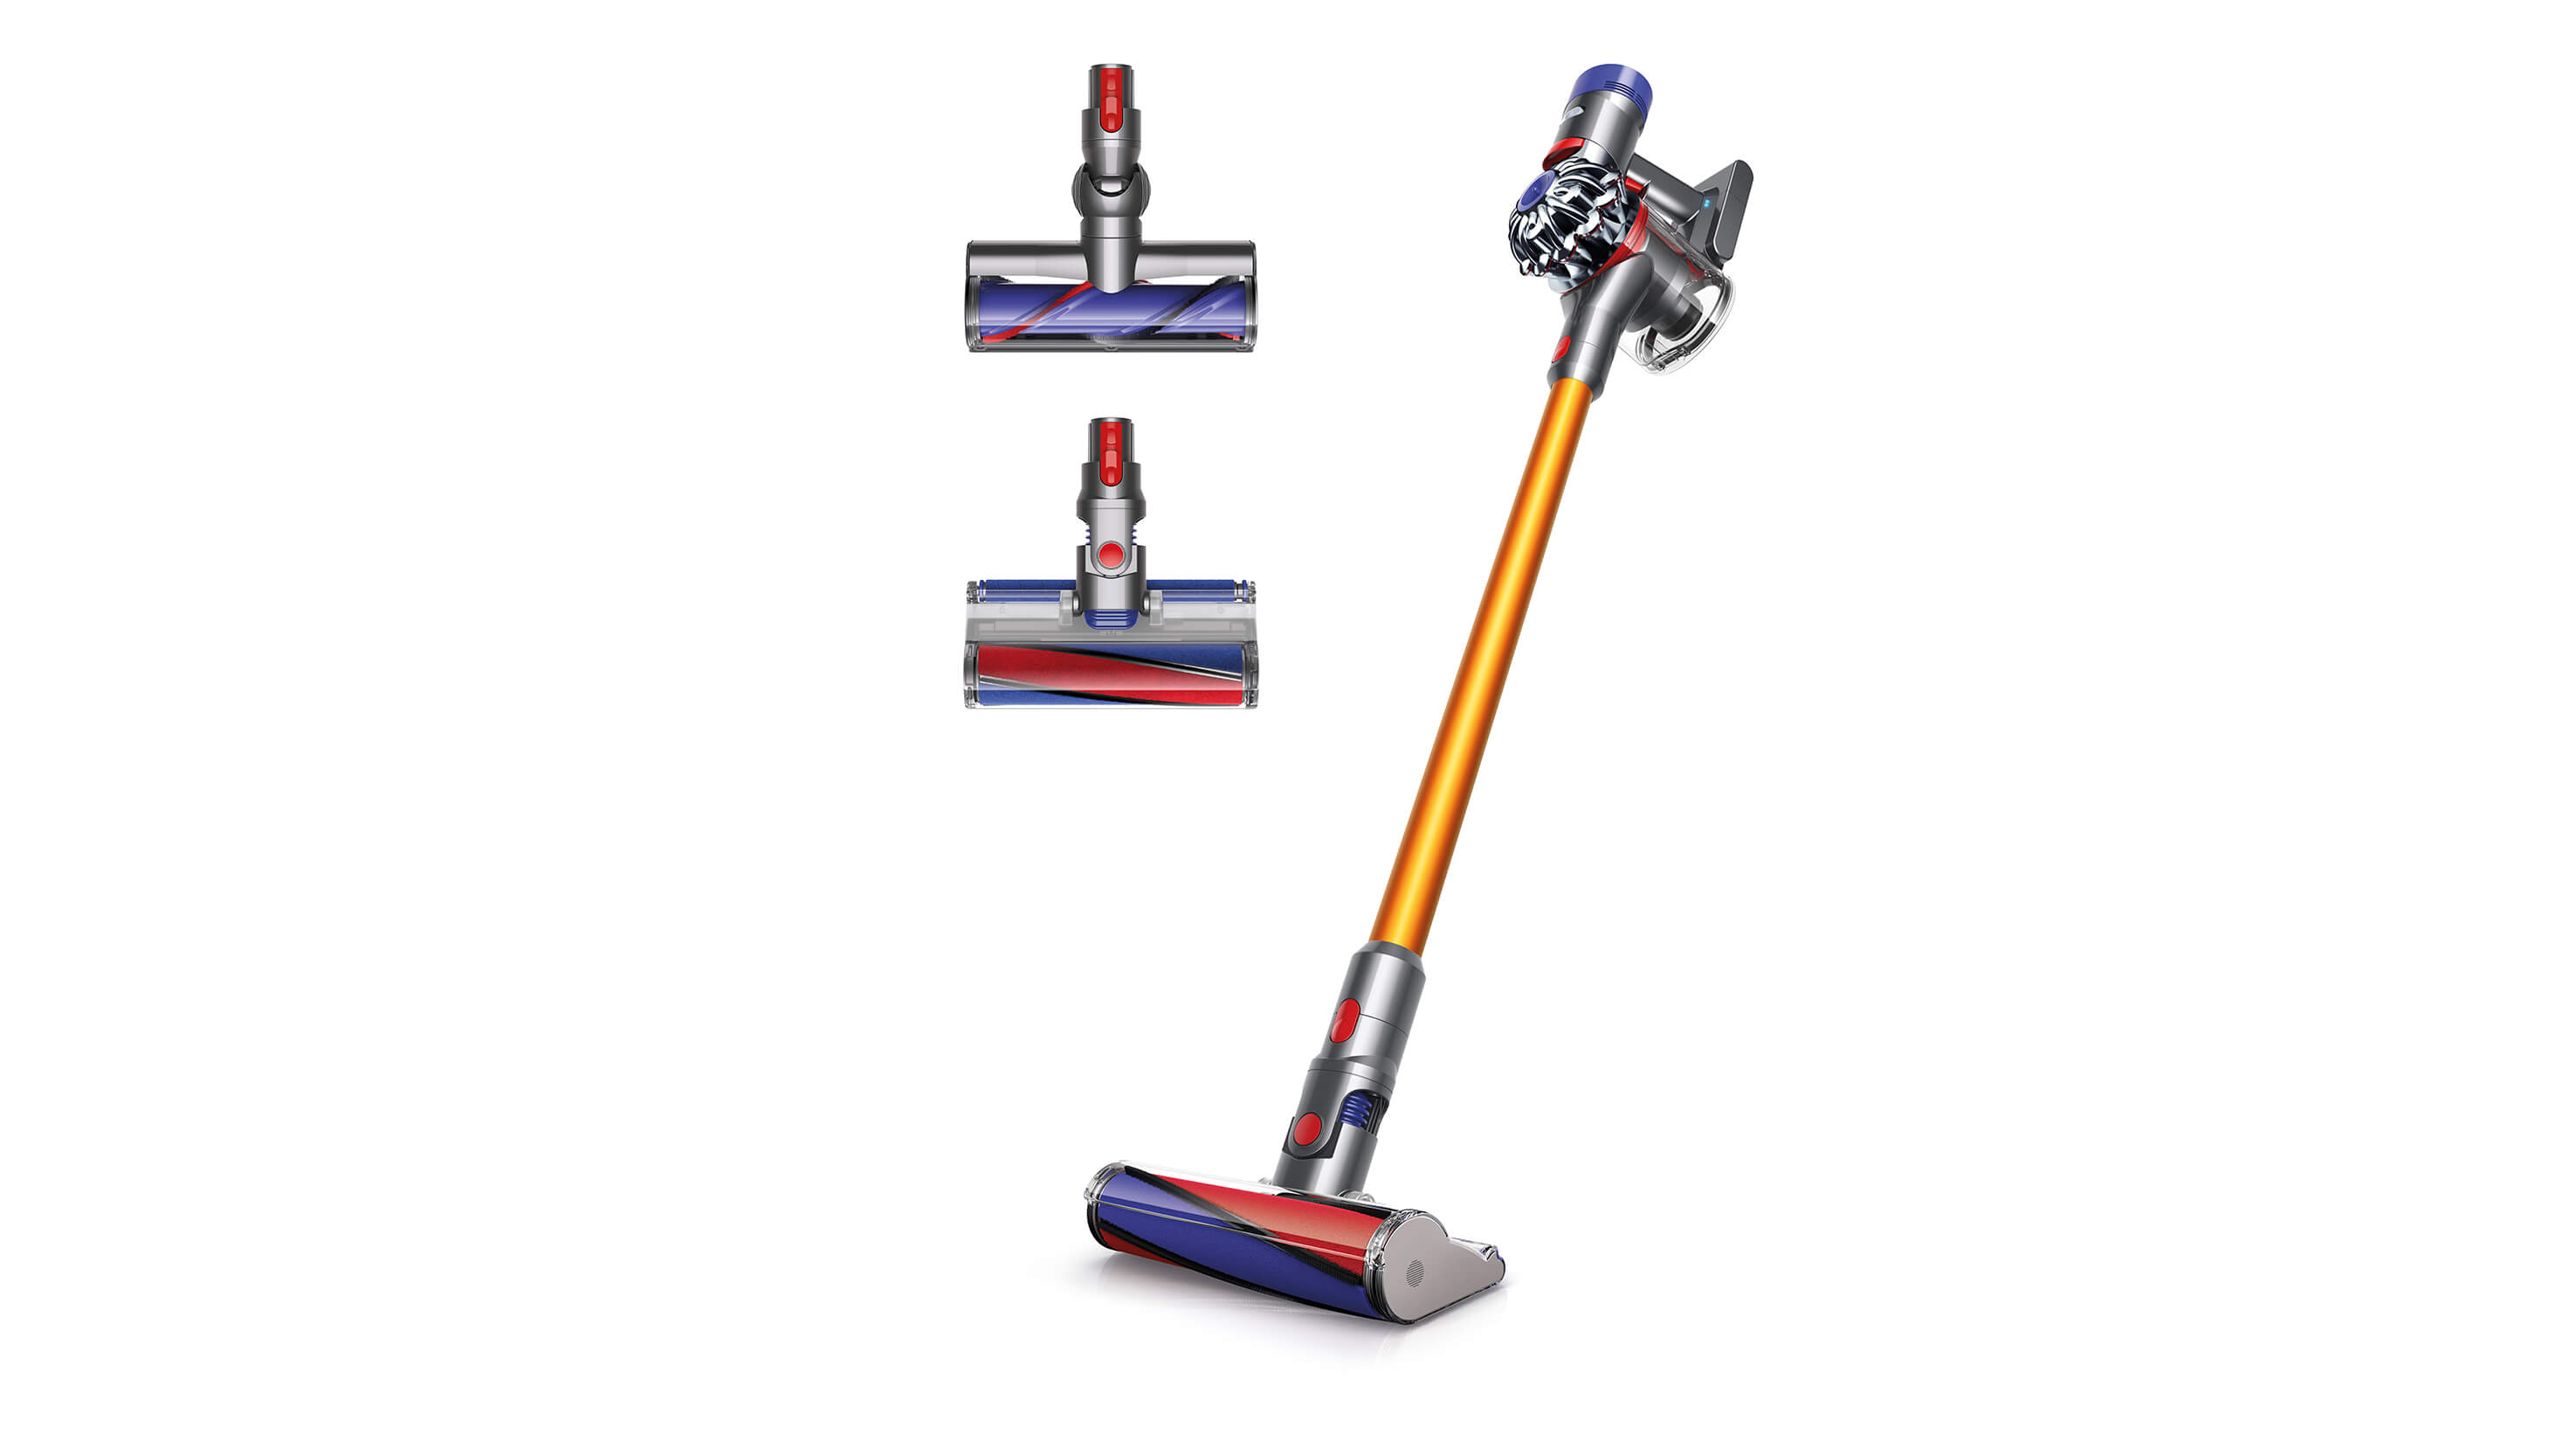 58dad69f070 Dyson V8 Absolute Cordless Vacuum Cleaner